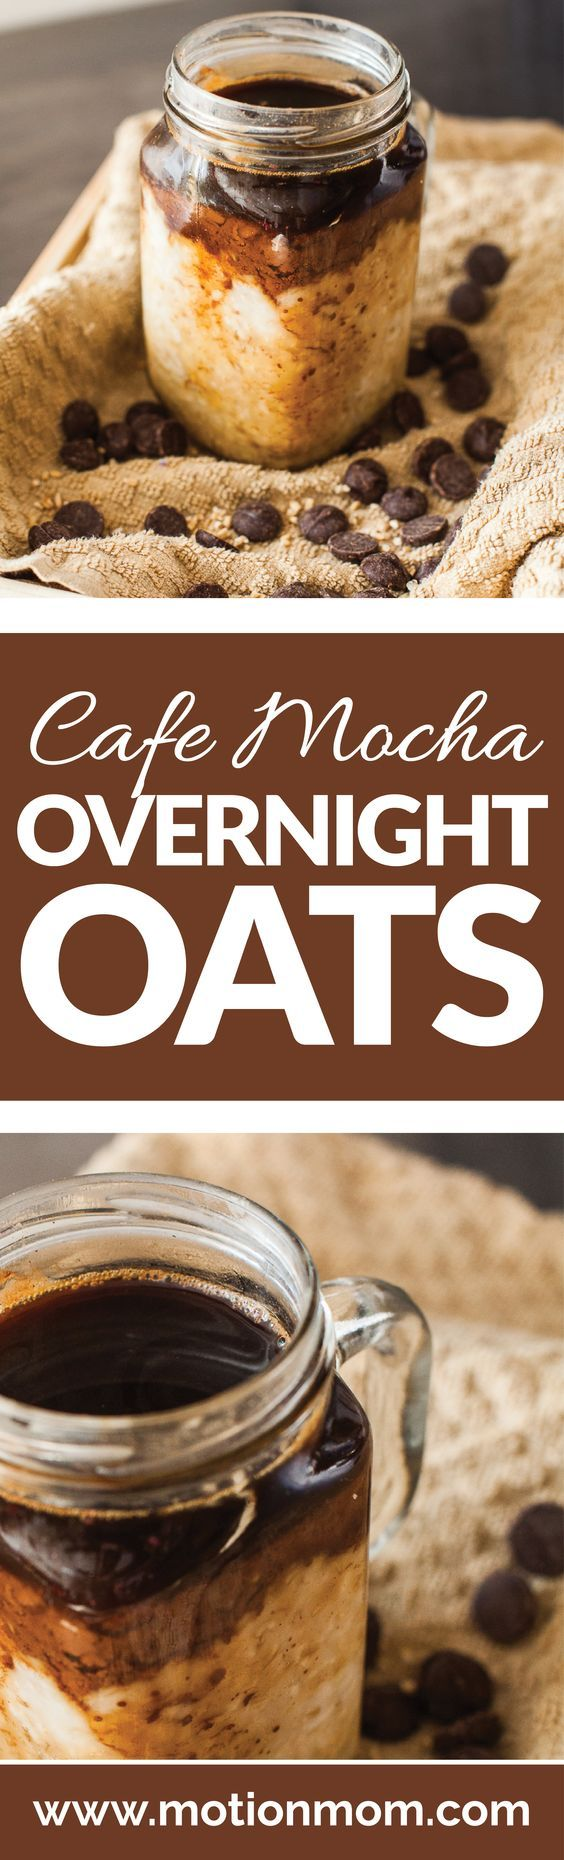 Cafe Mocha Overnight Oats. Only a few ingredients are needed for this overnight oat recipe! All clean eating ingredients are used for this healthy coffee flavored breakfast. Pin now to make this later!